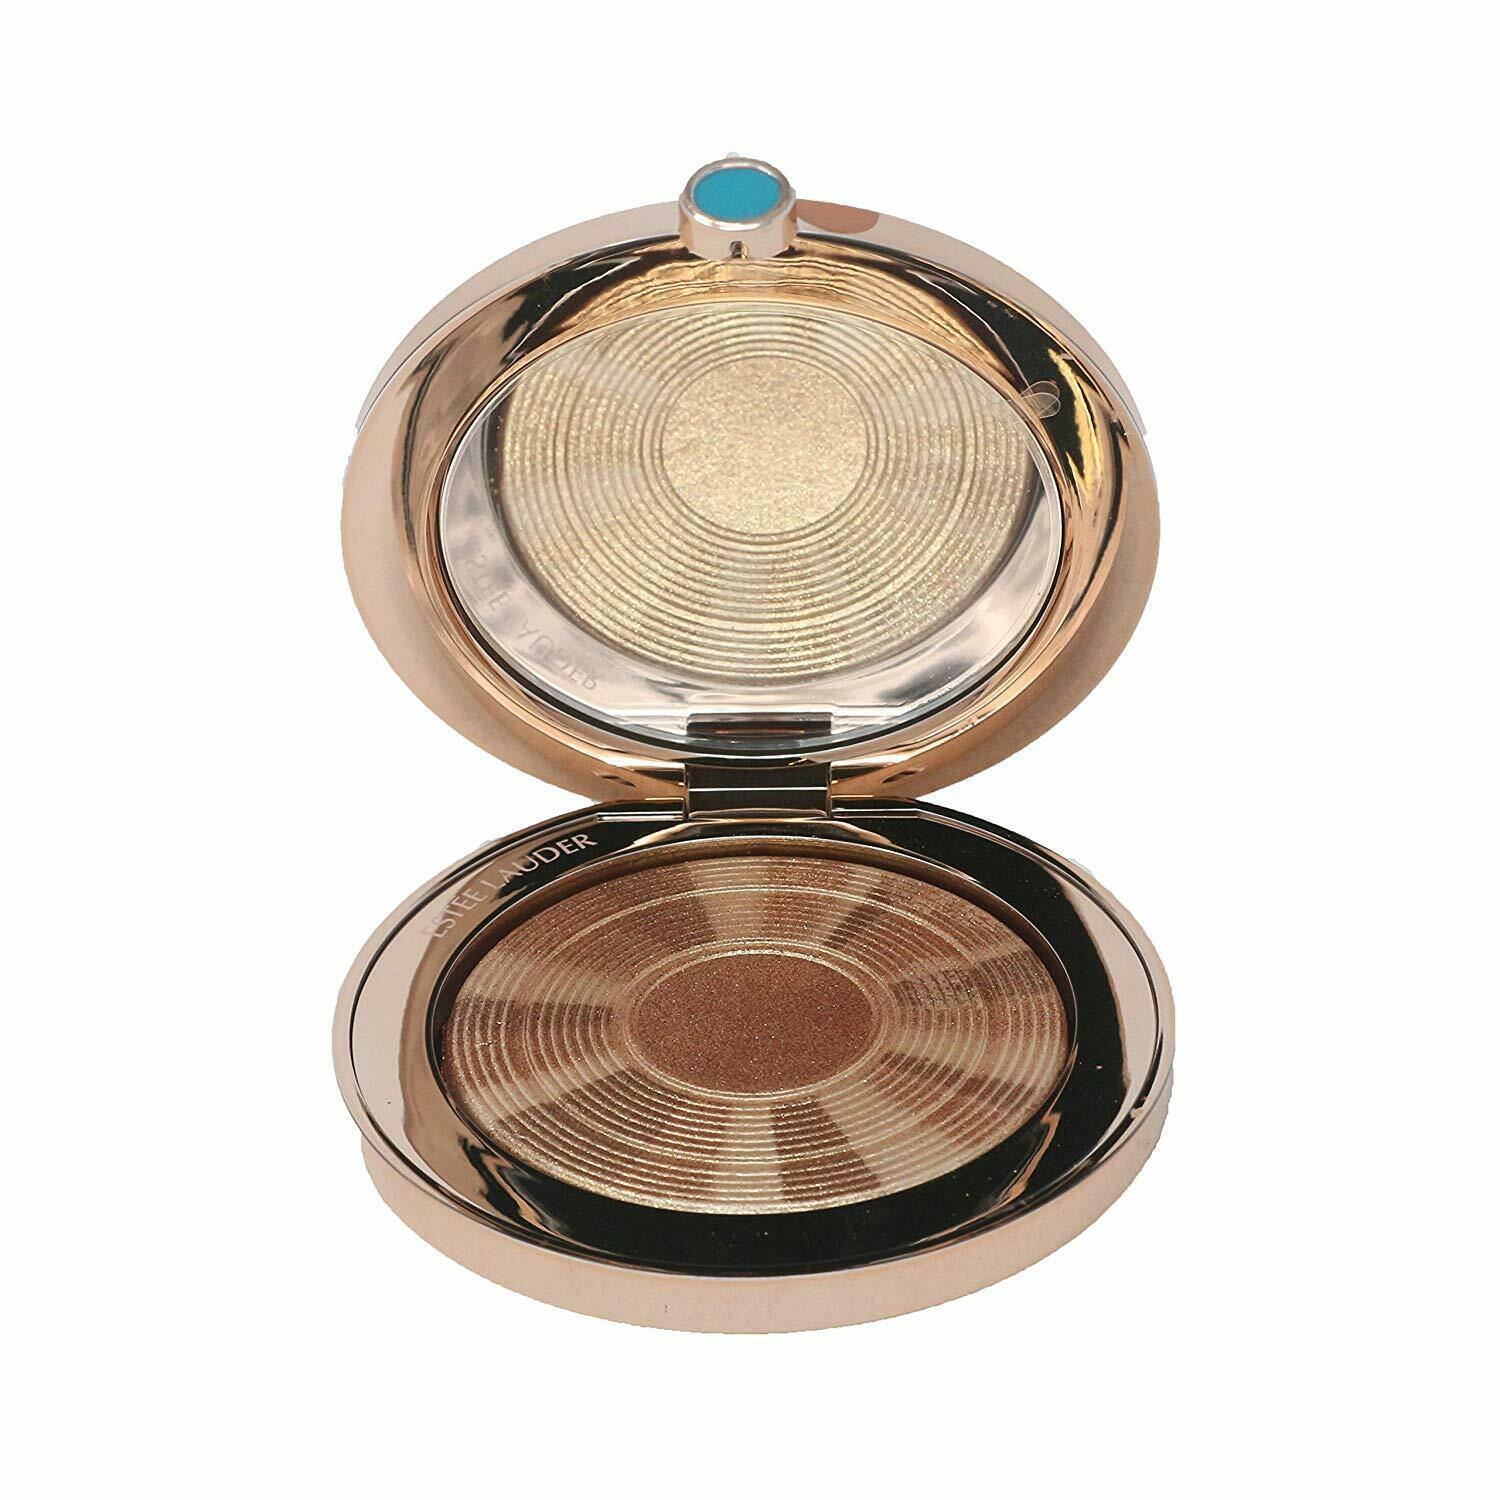 Estee Lauder Bronze Goddess Illuminating Powder Gelee - Heat Wave 01 - $34.64